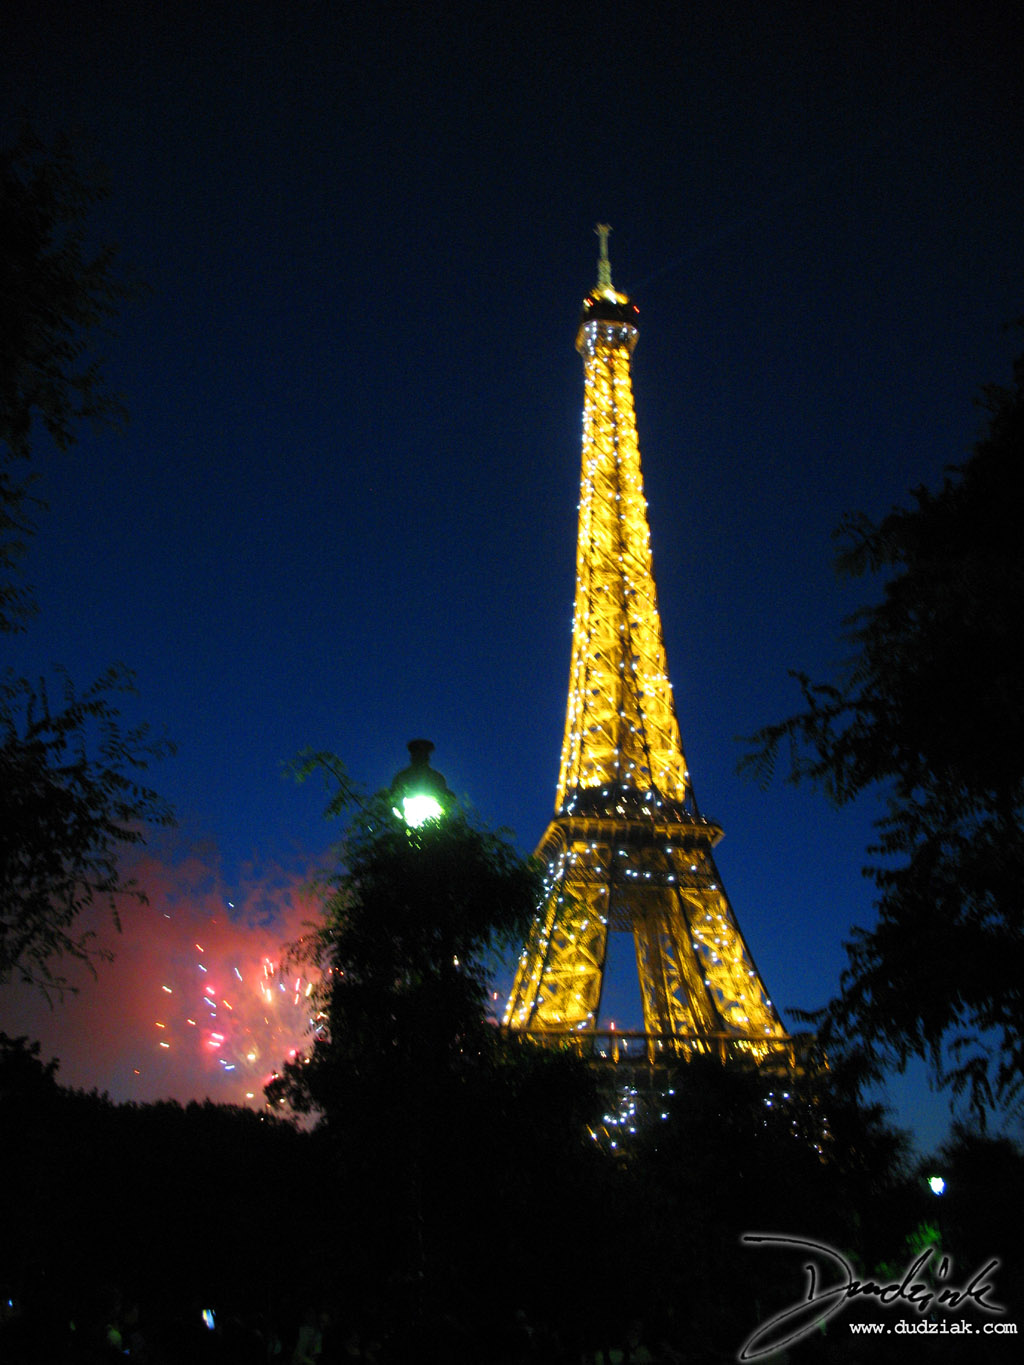 Fireworks,  Bastille Day,  Eiffel Tower,  Night,  Paris France